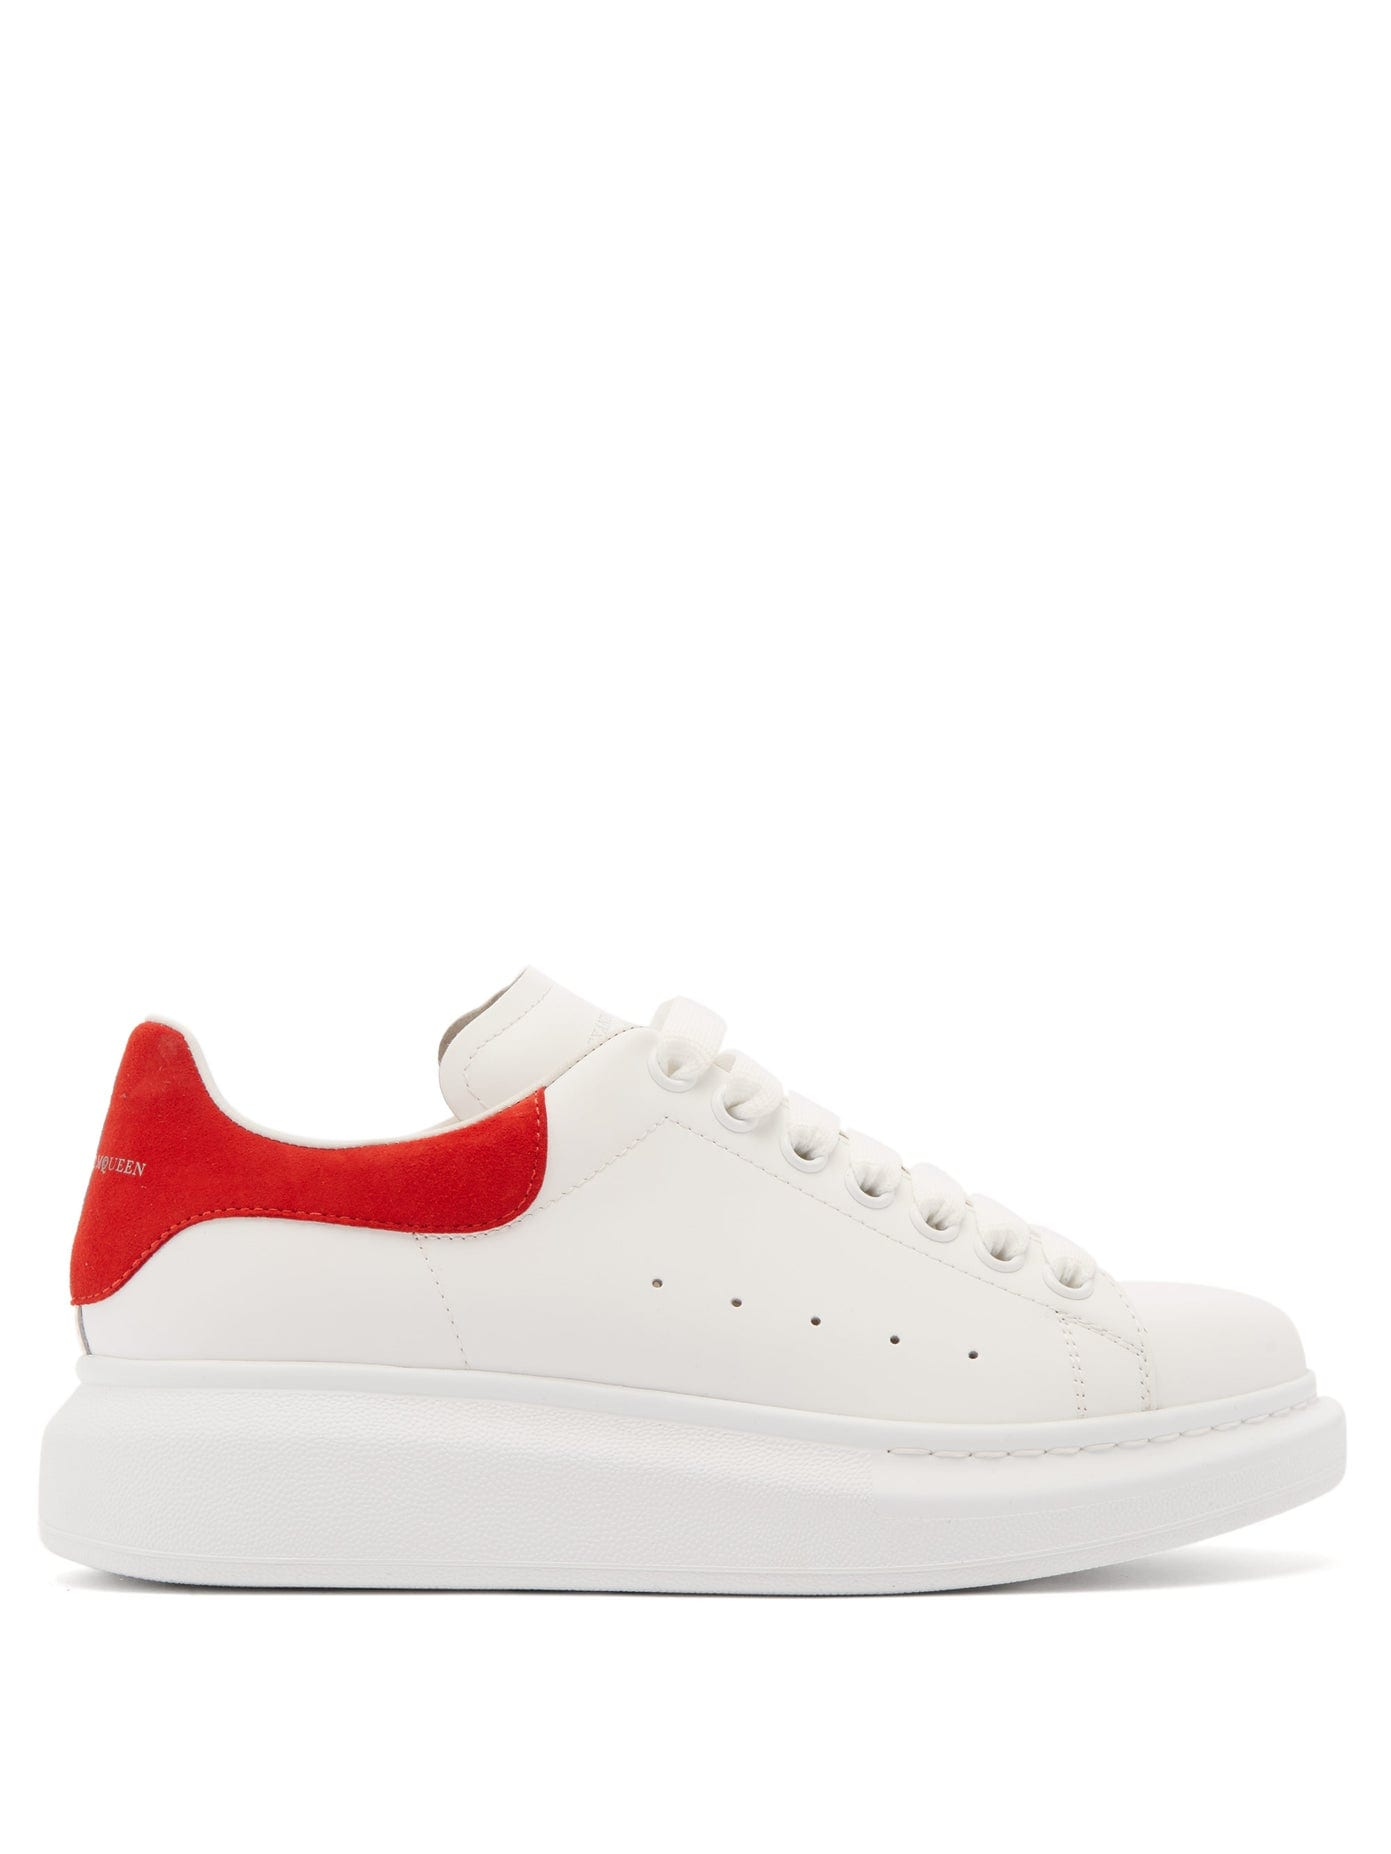 white leather platform sneakers with red heel tab